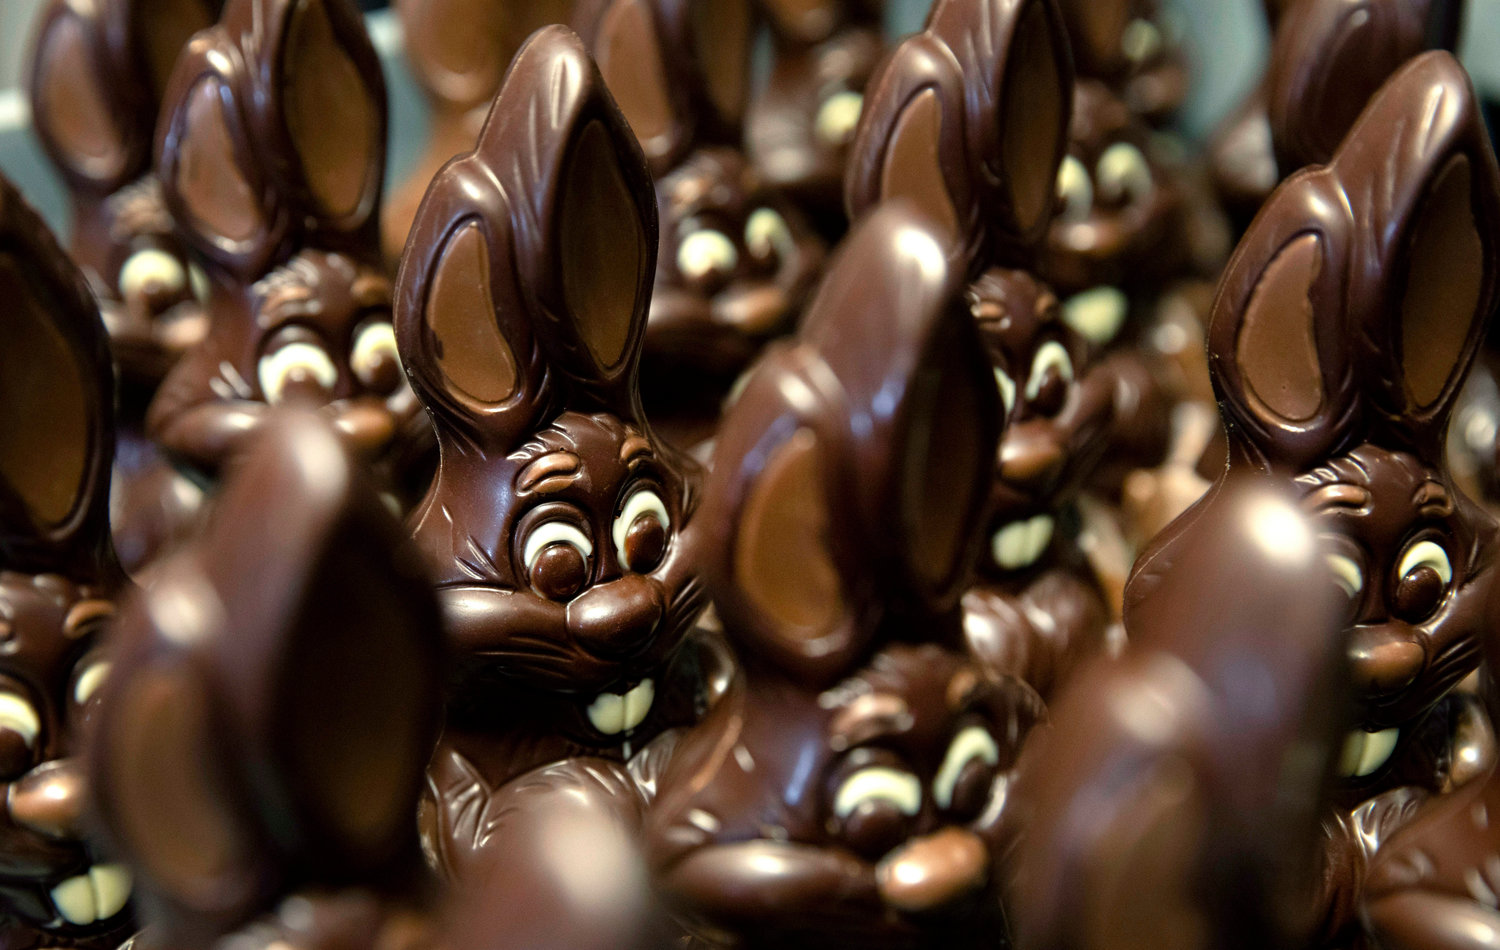 HOLIDAY TREAT —Chocolate rabbits wait to be decorated at the Cocoatree chocolate shop in Lonzee, Belgium. As all non-essential shops in Belgium have been closed due to the outbreak of COVID-19, many chocolatiers have had to resort to online sales, home delivery or pickup on site.